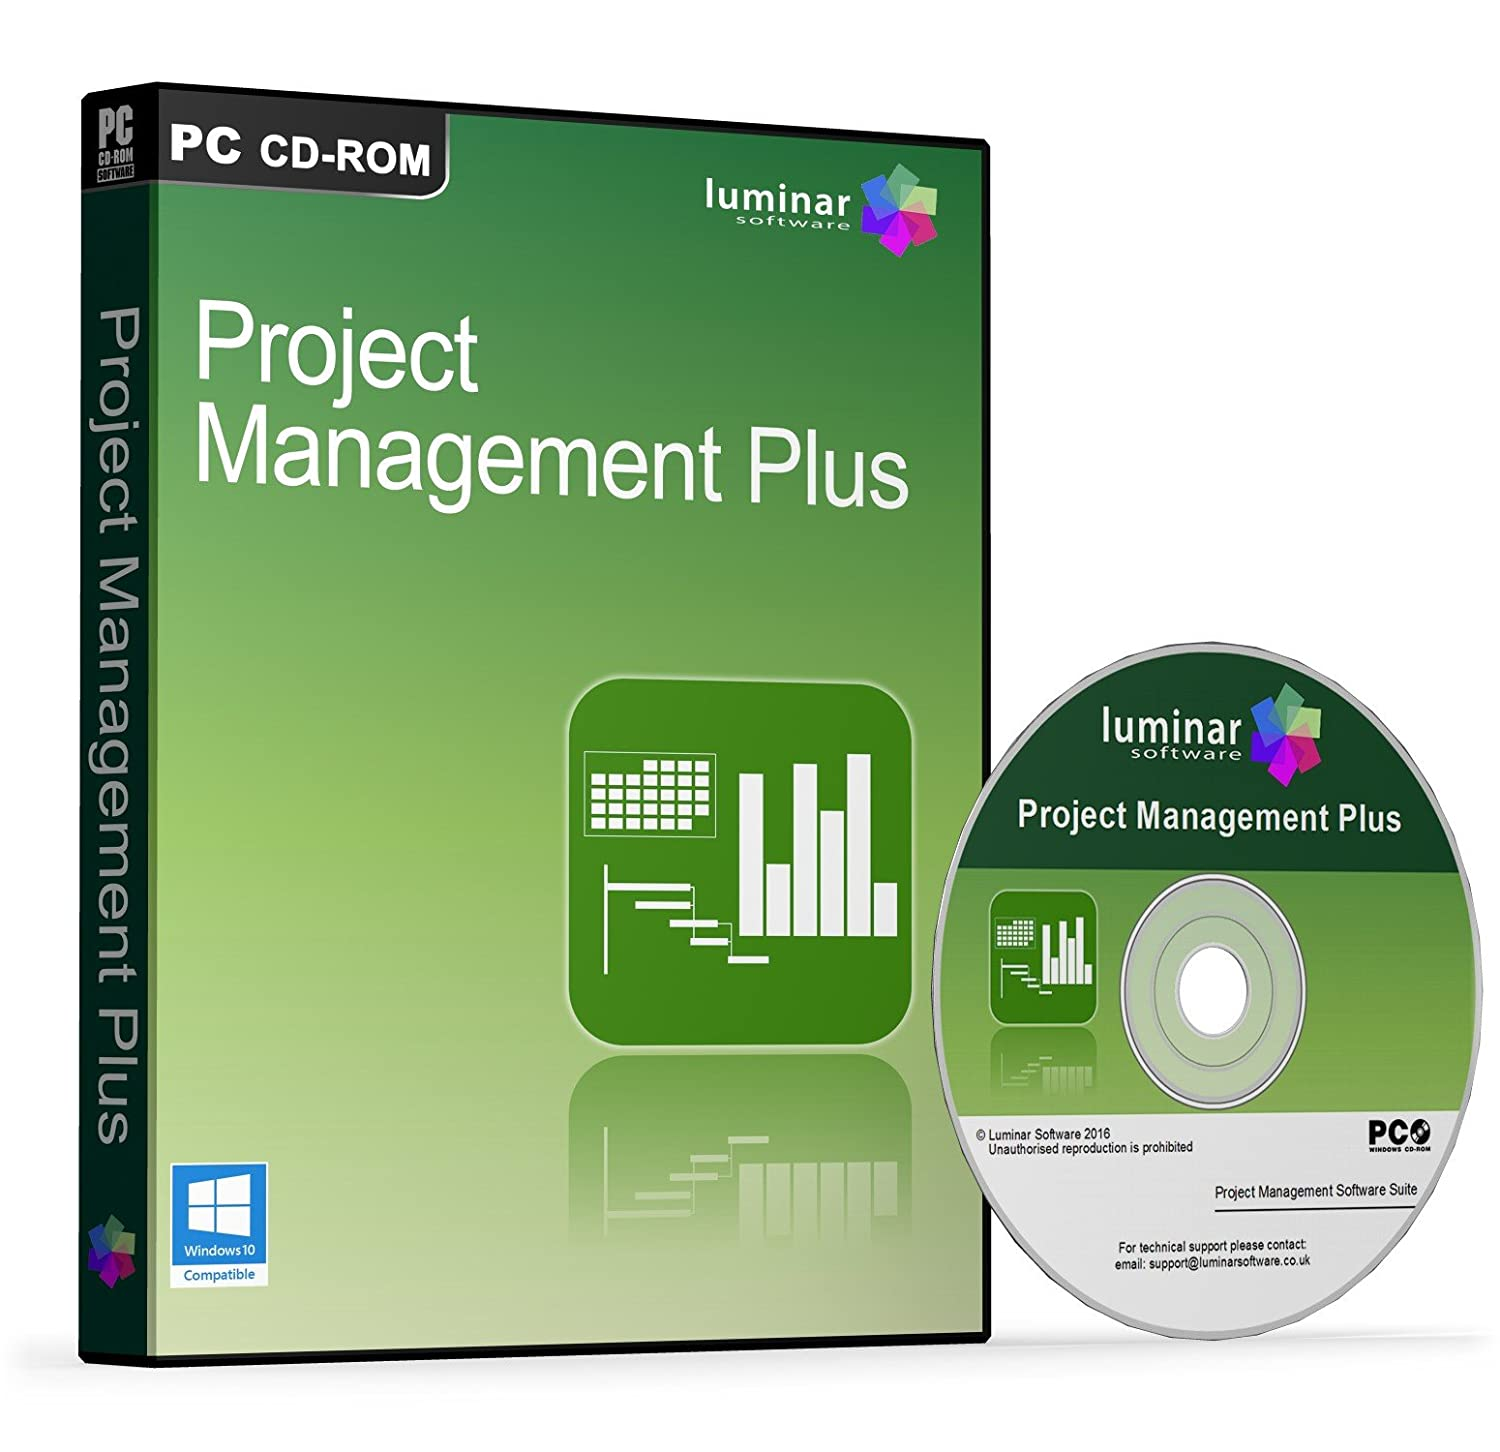 Project Online is a flexible online solution for project portfolio management (PPM) and everyday work. It enables organizations to get started quickly with powerful project management capabilities to plan, prioritize, and manage project and portfolio investments from almost anywhere.